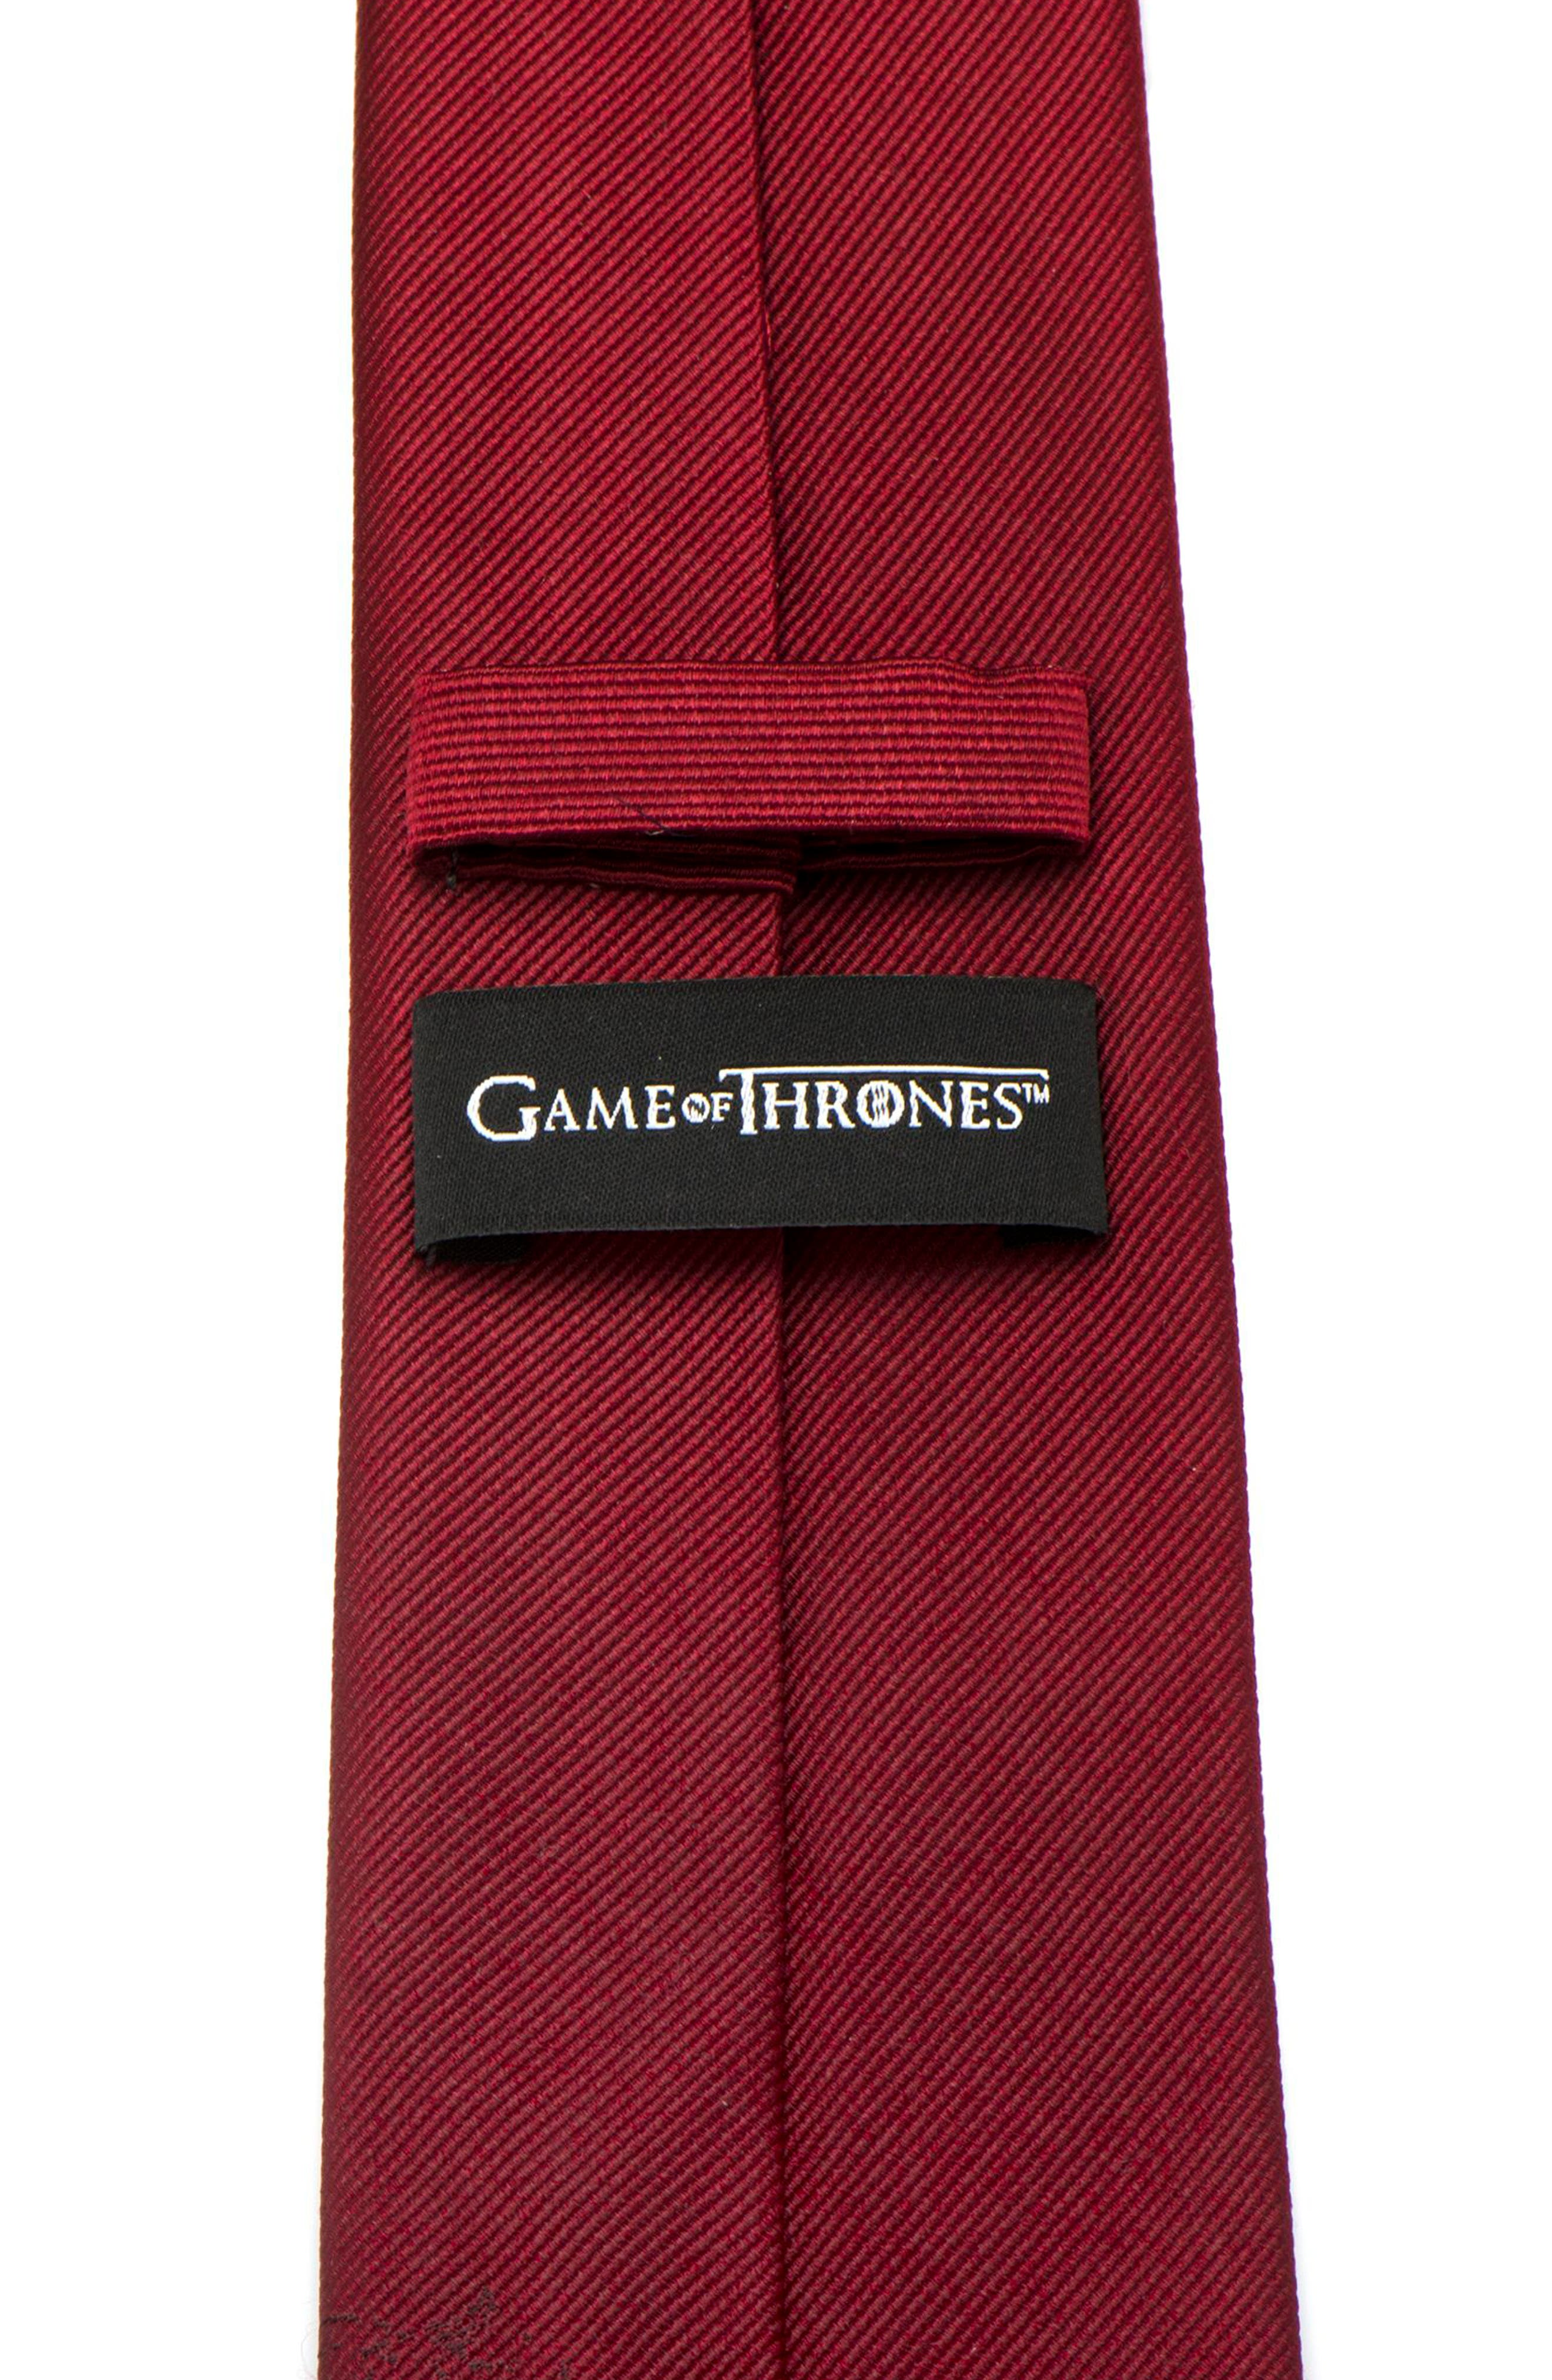 Game of Thrones Lannister Silk Tie,                             Alternate thumbnail 4, color,                             Red